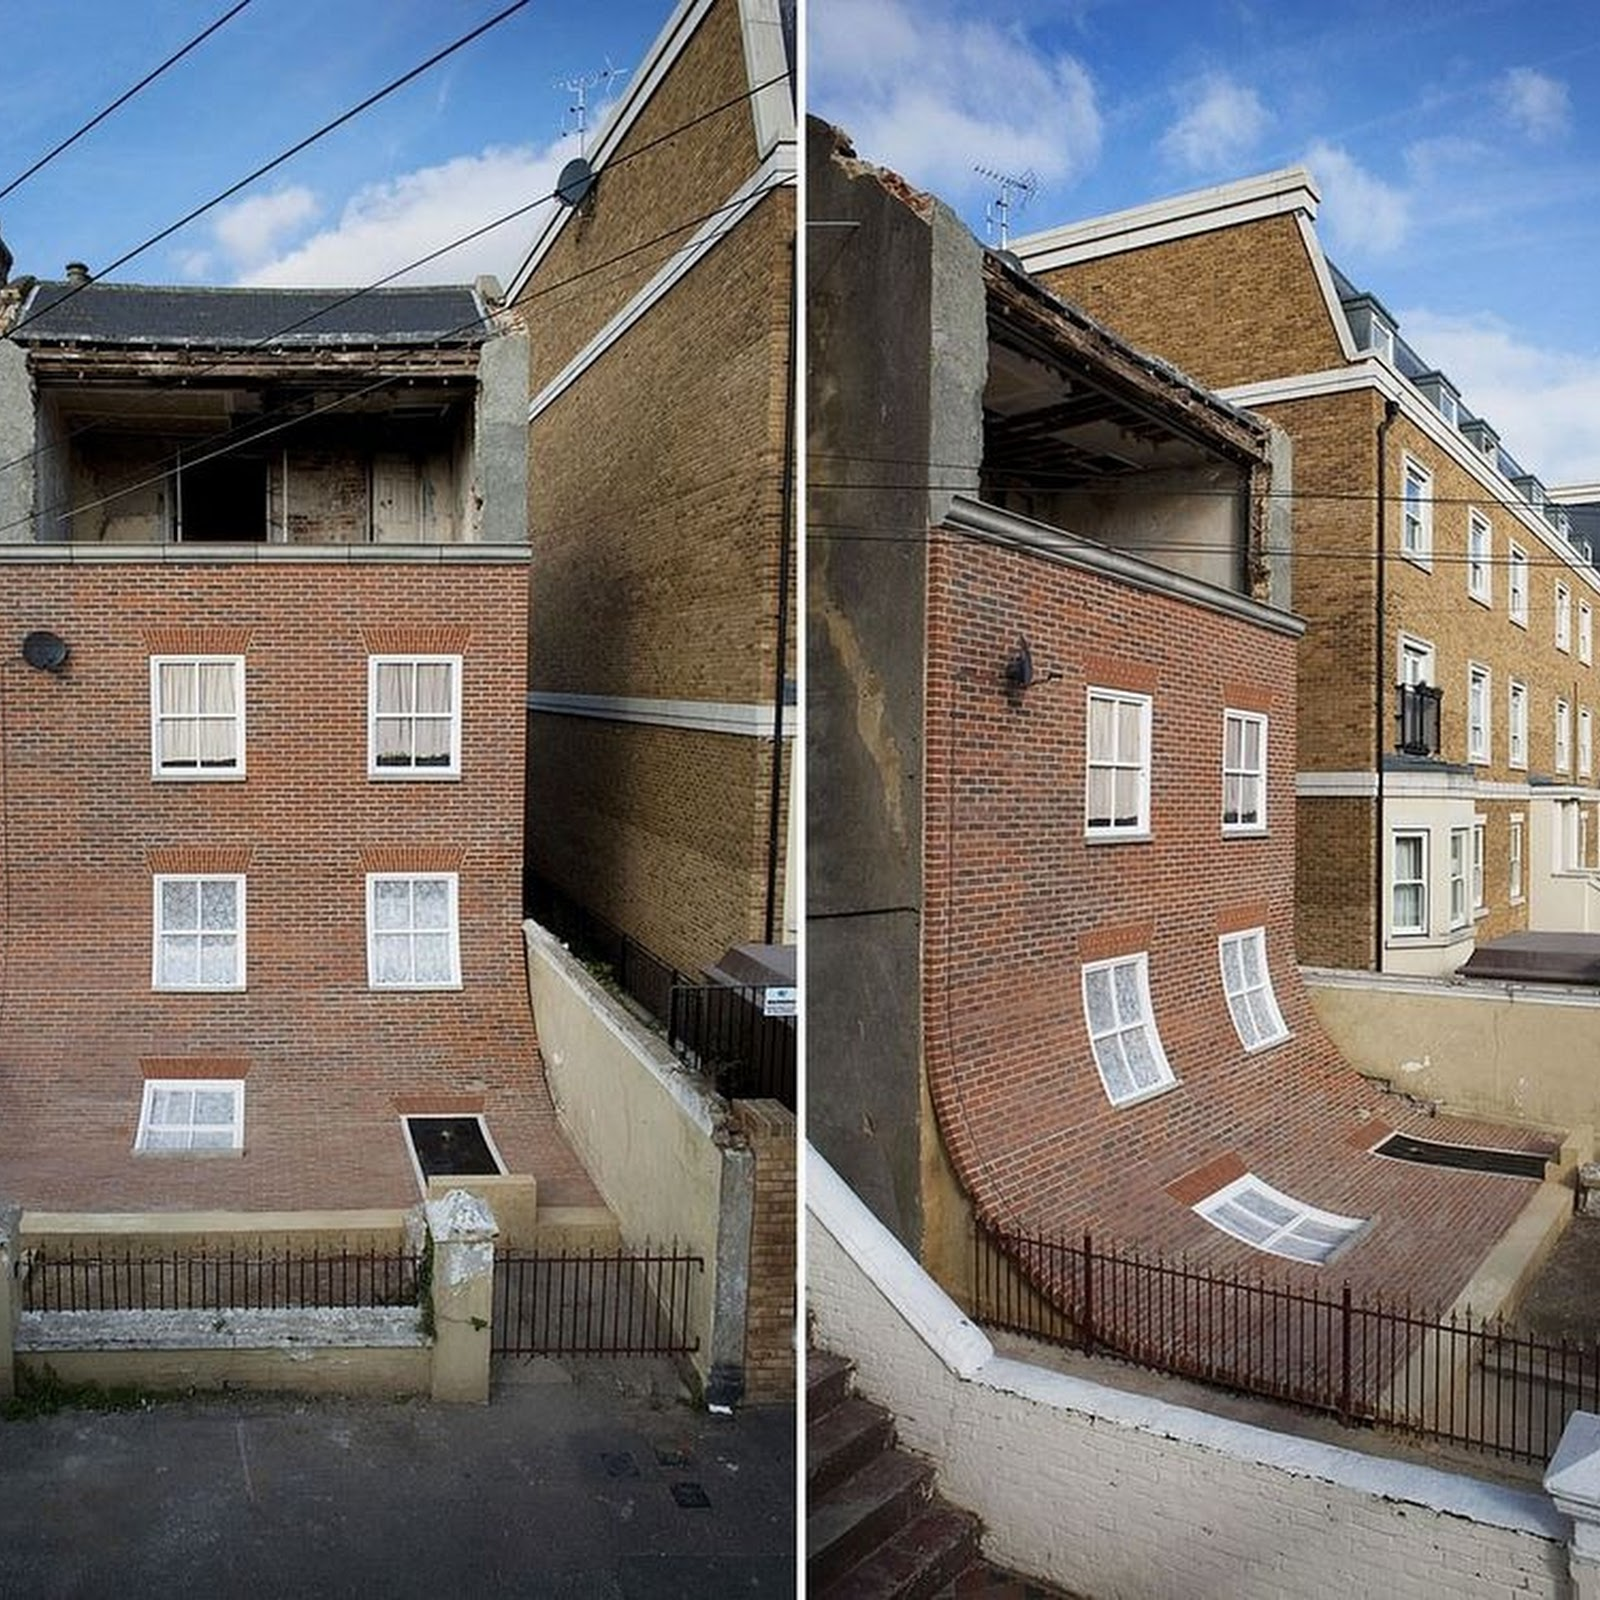 Alex Chinneck's Architectural Illusions